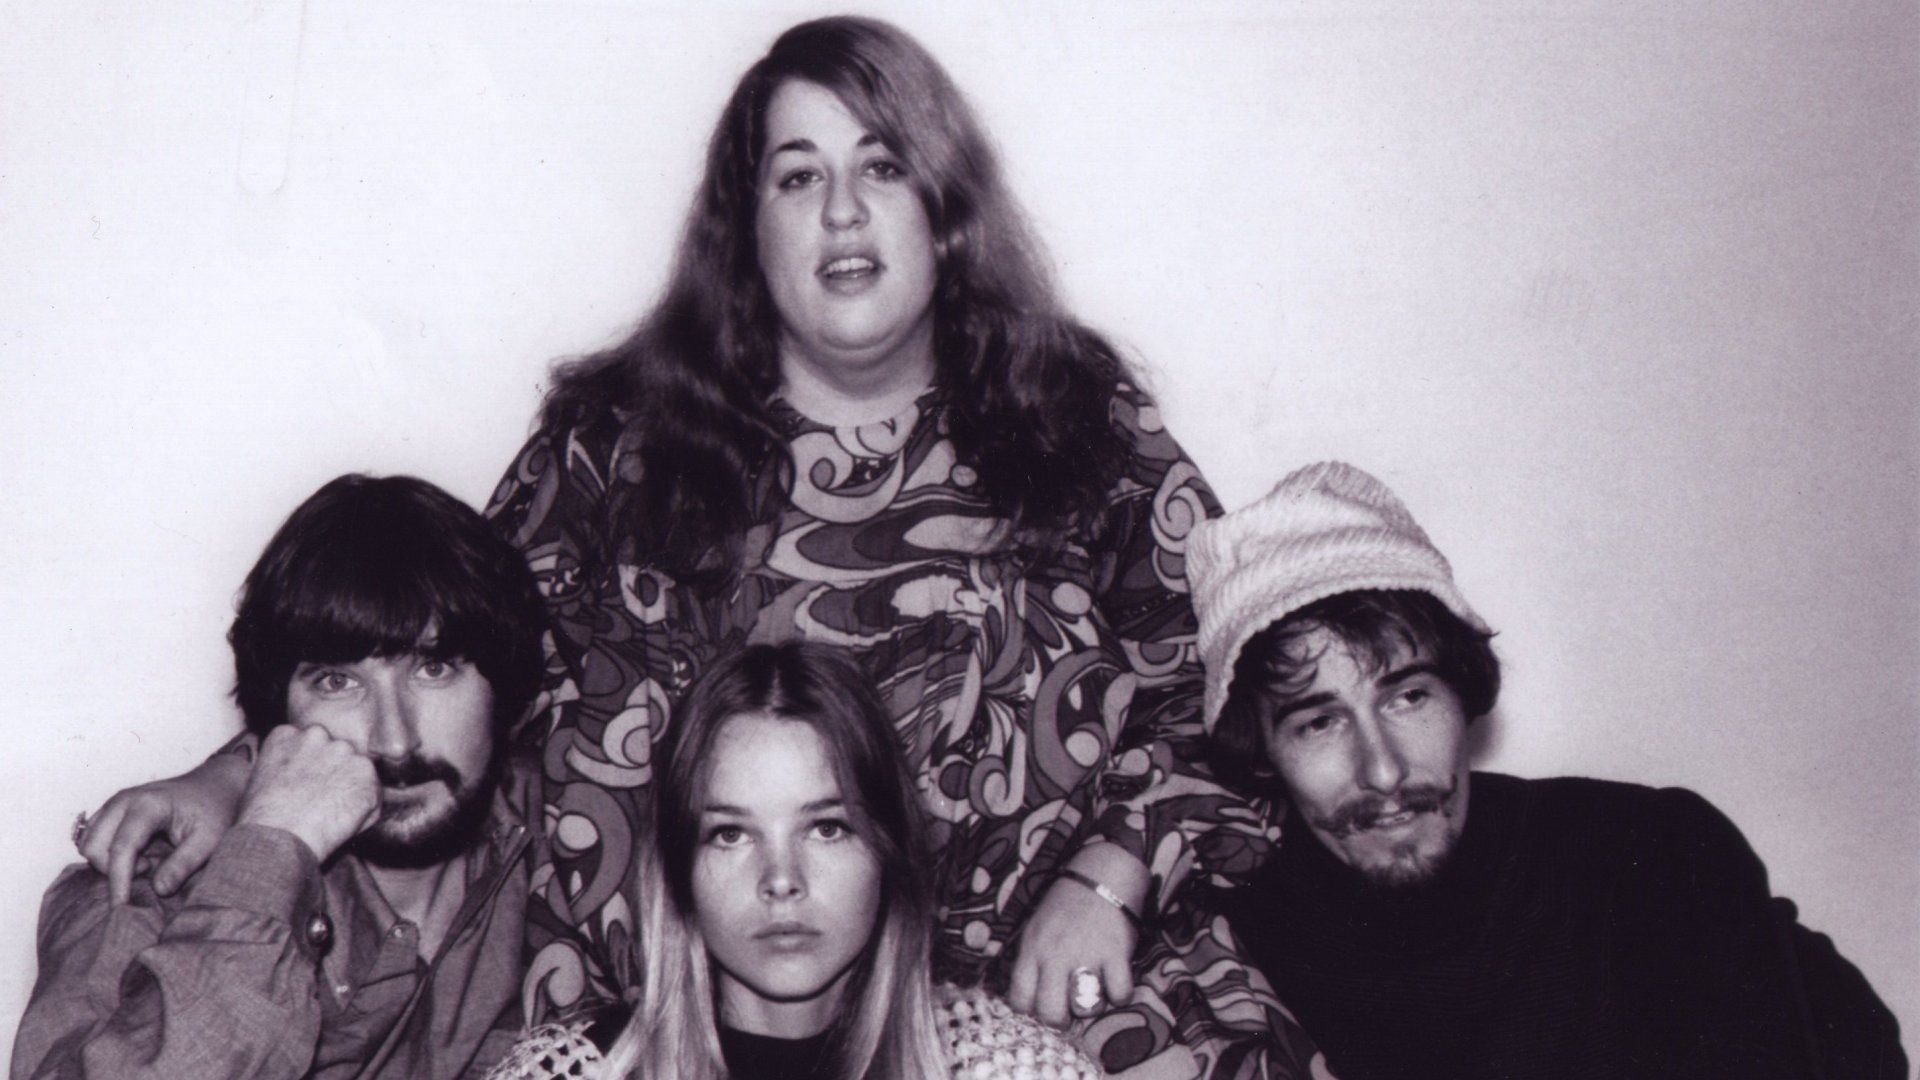 According to Denny Doherty it was Cass who had the inspiration to name the band The Mamas and The Papas: